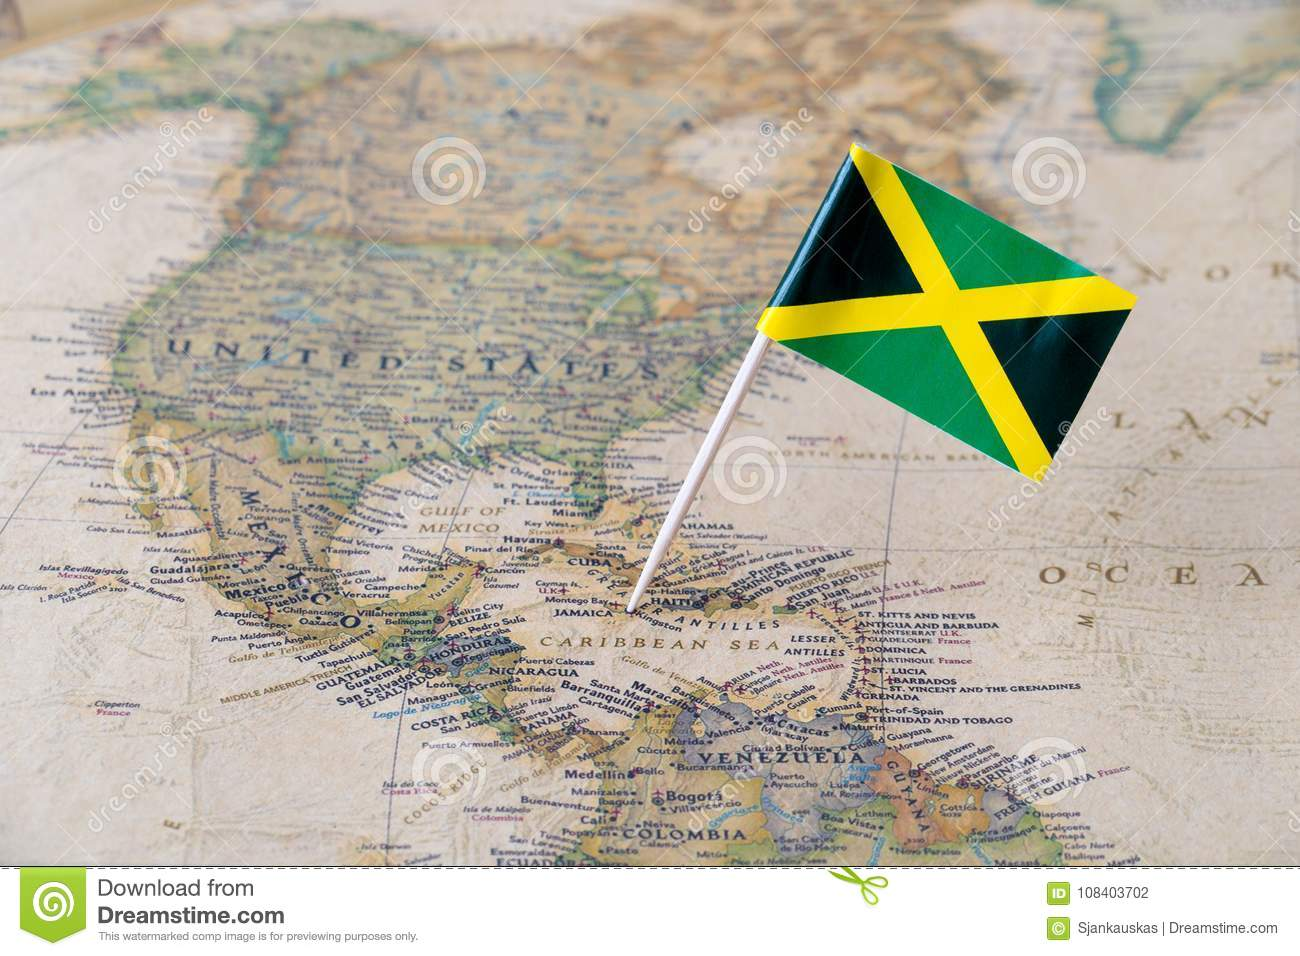 Jamaica flag pin on world map stock photo image of atlas kingston download jamaica flag pin on world map stock photo image of atlas kingston gumiabroncs Image collections